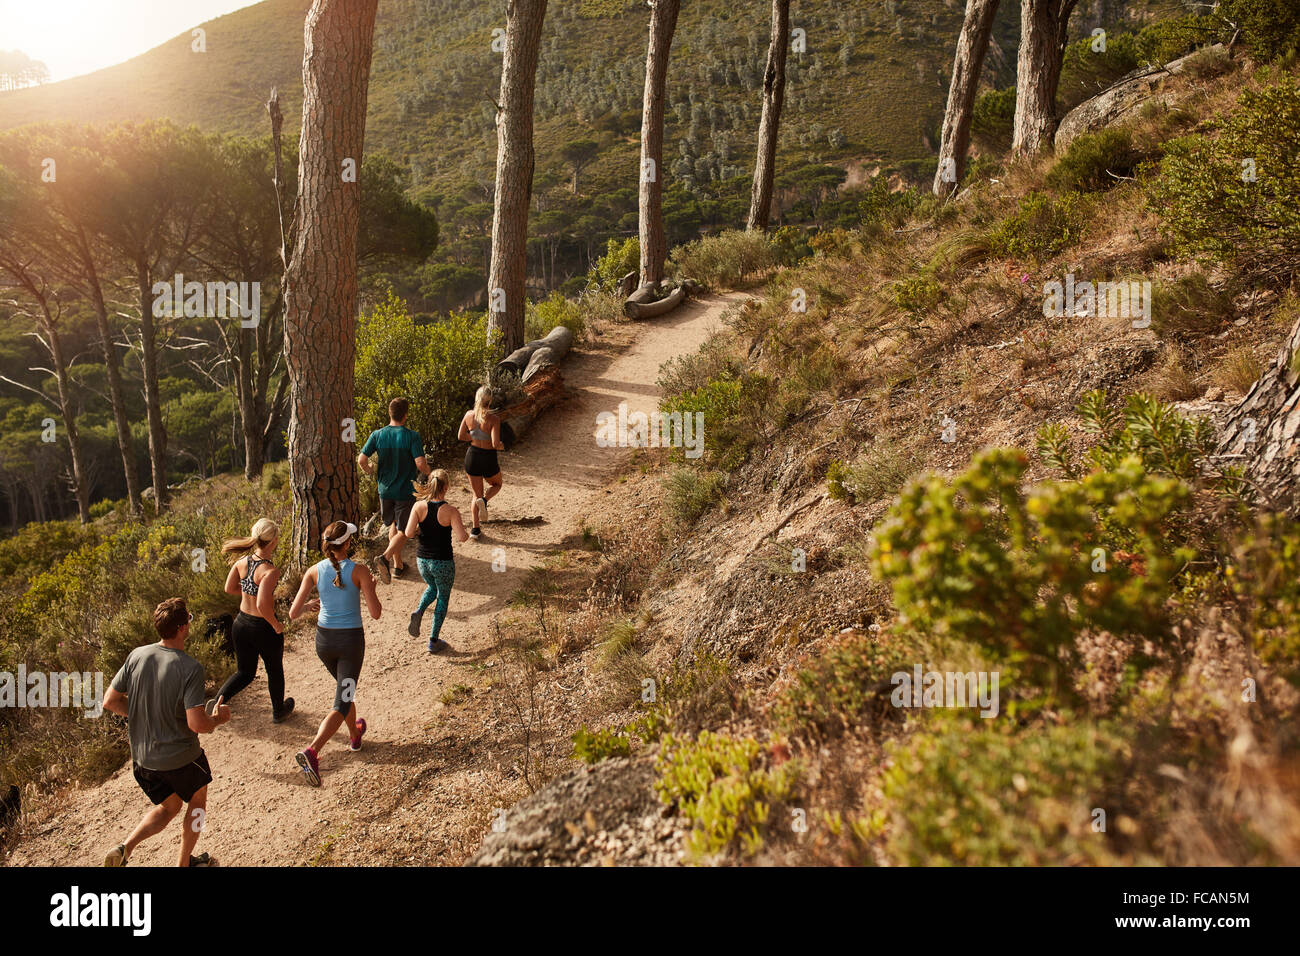 Group of young people trail running on a mountain path. Runners working out in beautiful nature. - Stock Image